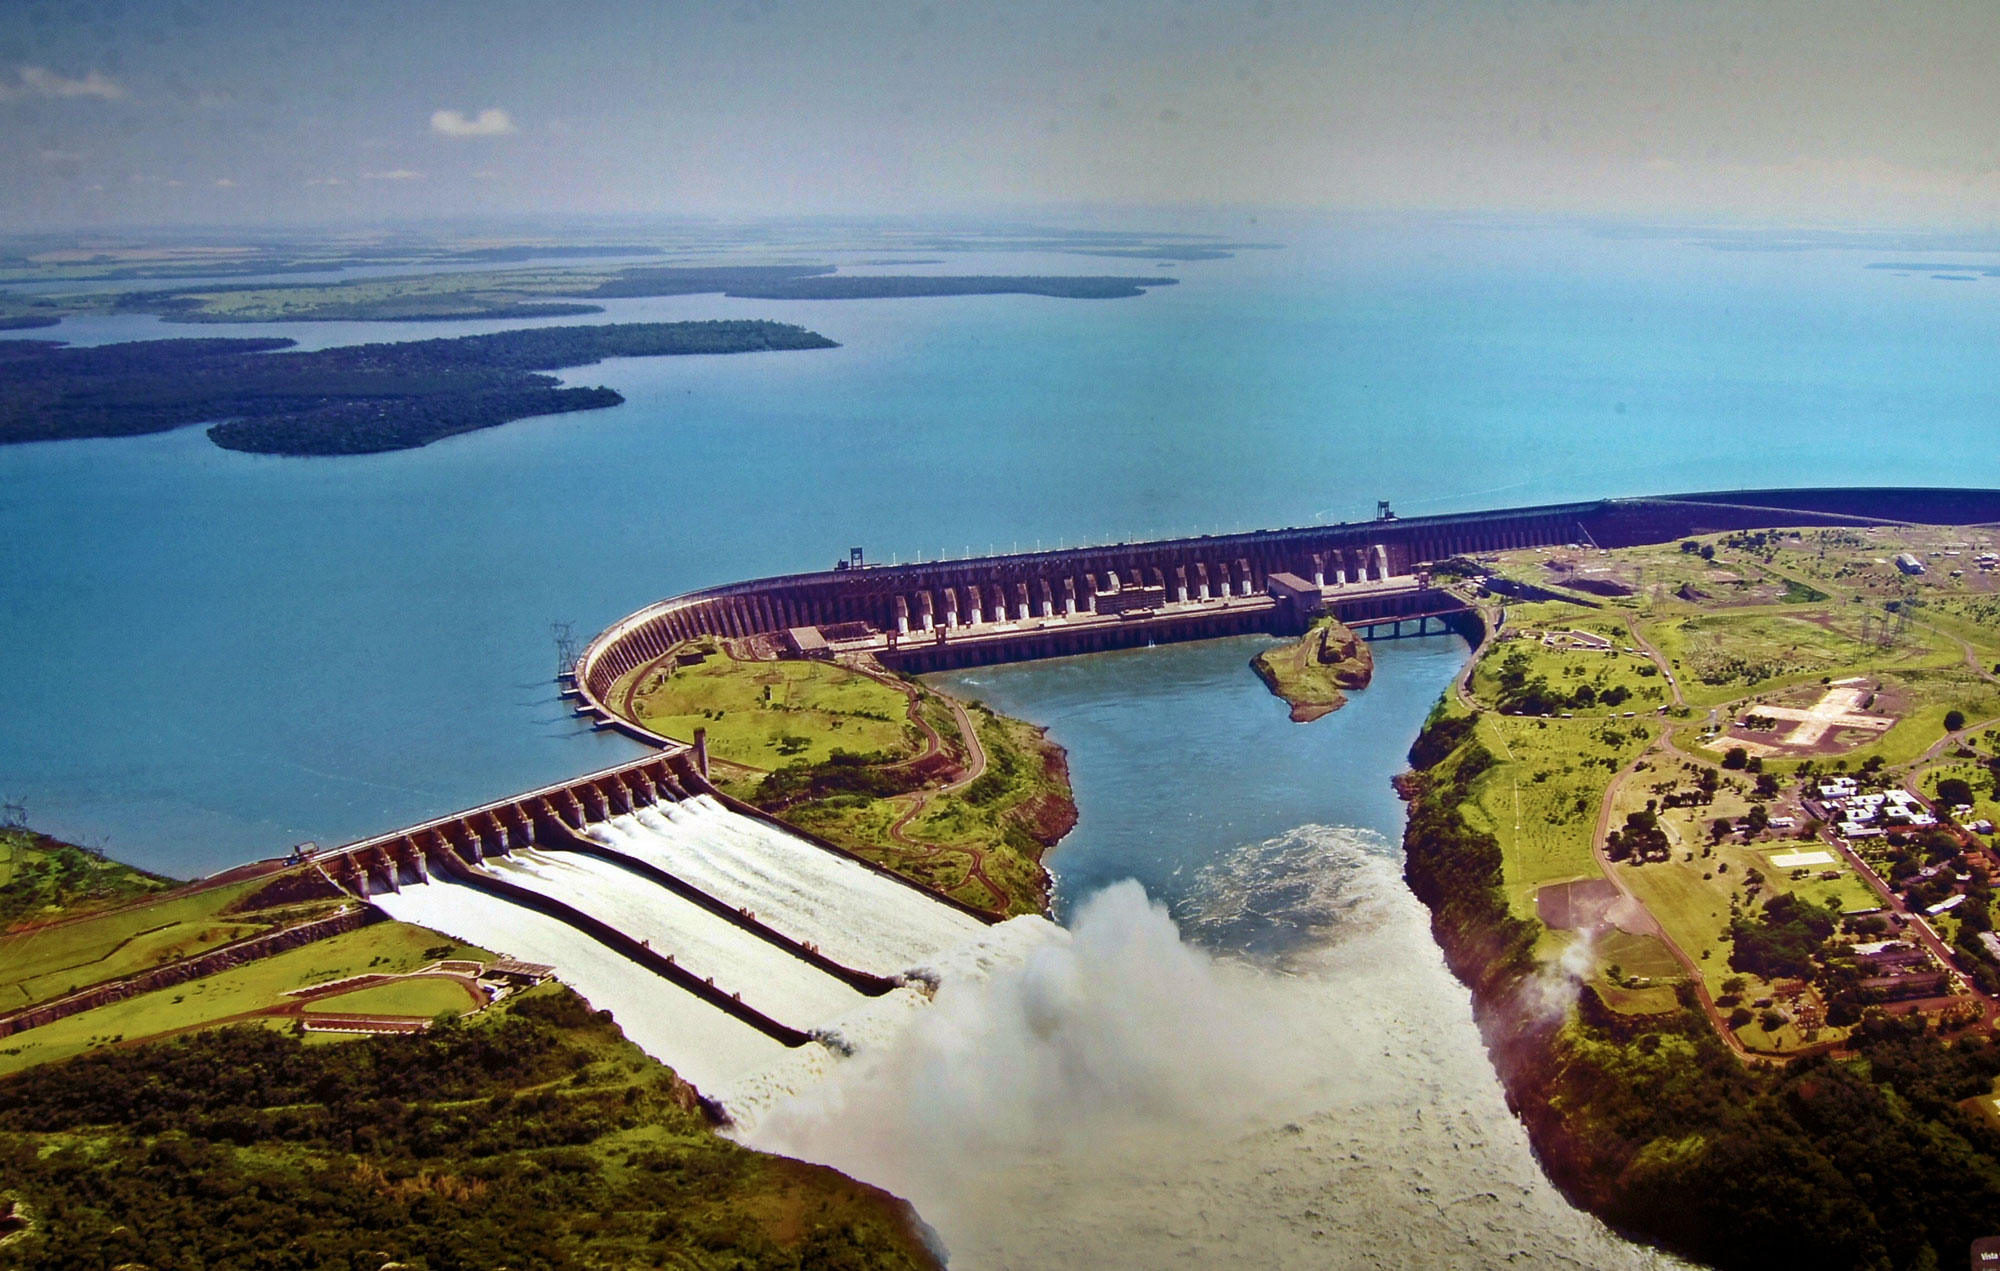 Itaipu dam, located on the Paraná river that borders Brazil and Paraguay